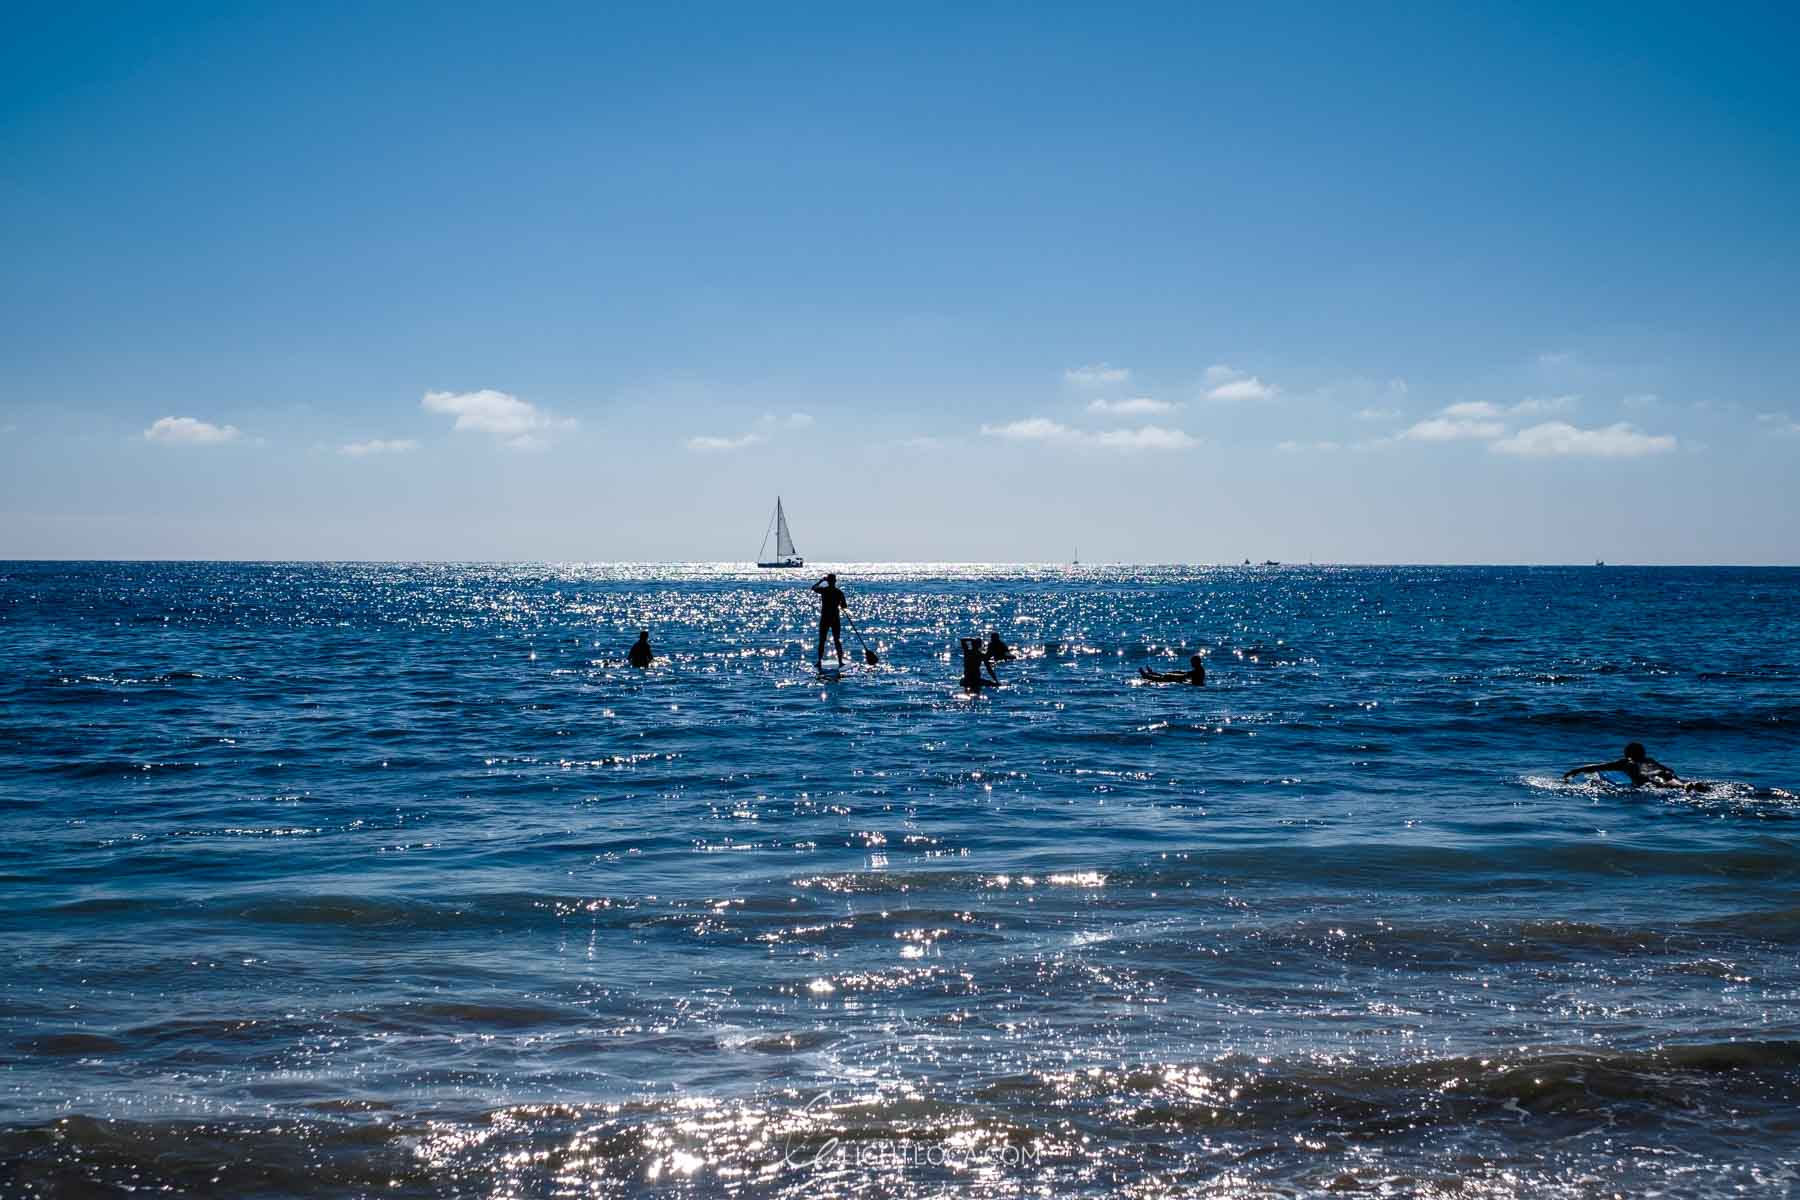 Sailboat and Silhouettes of people swimming